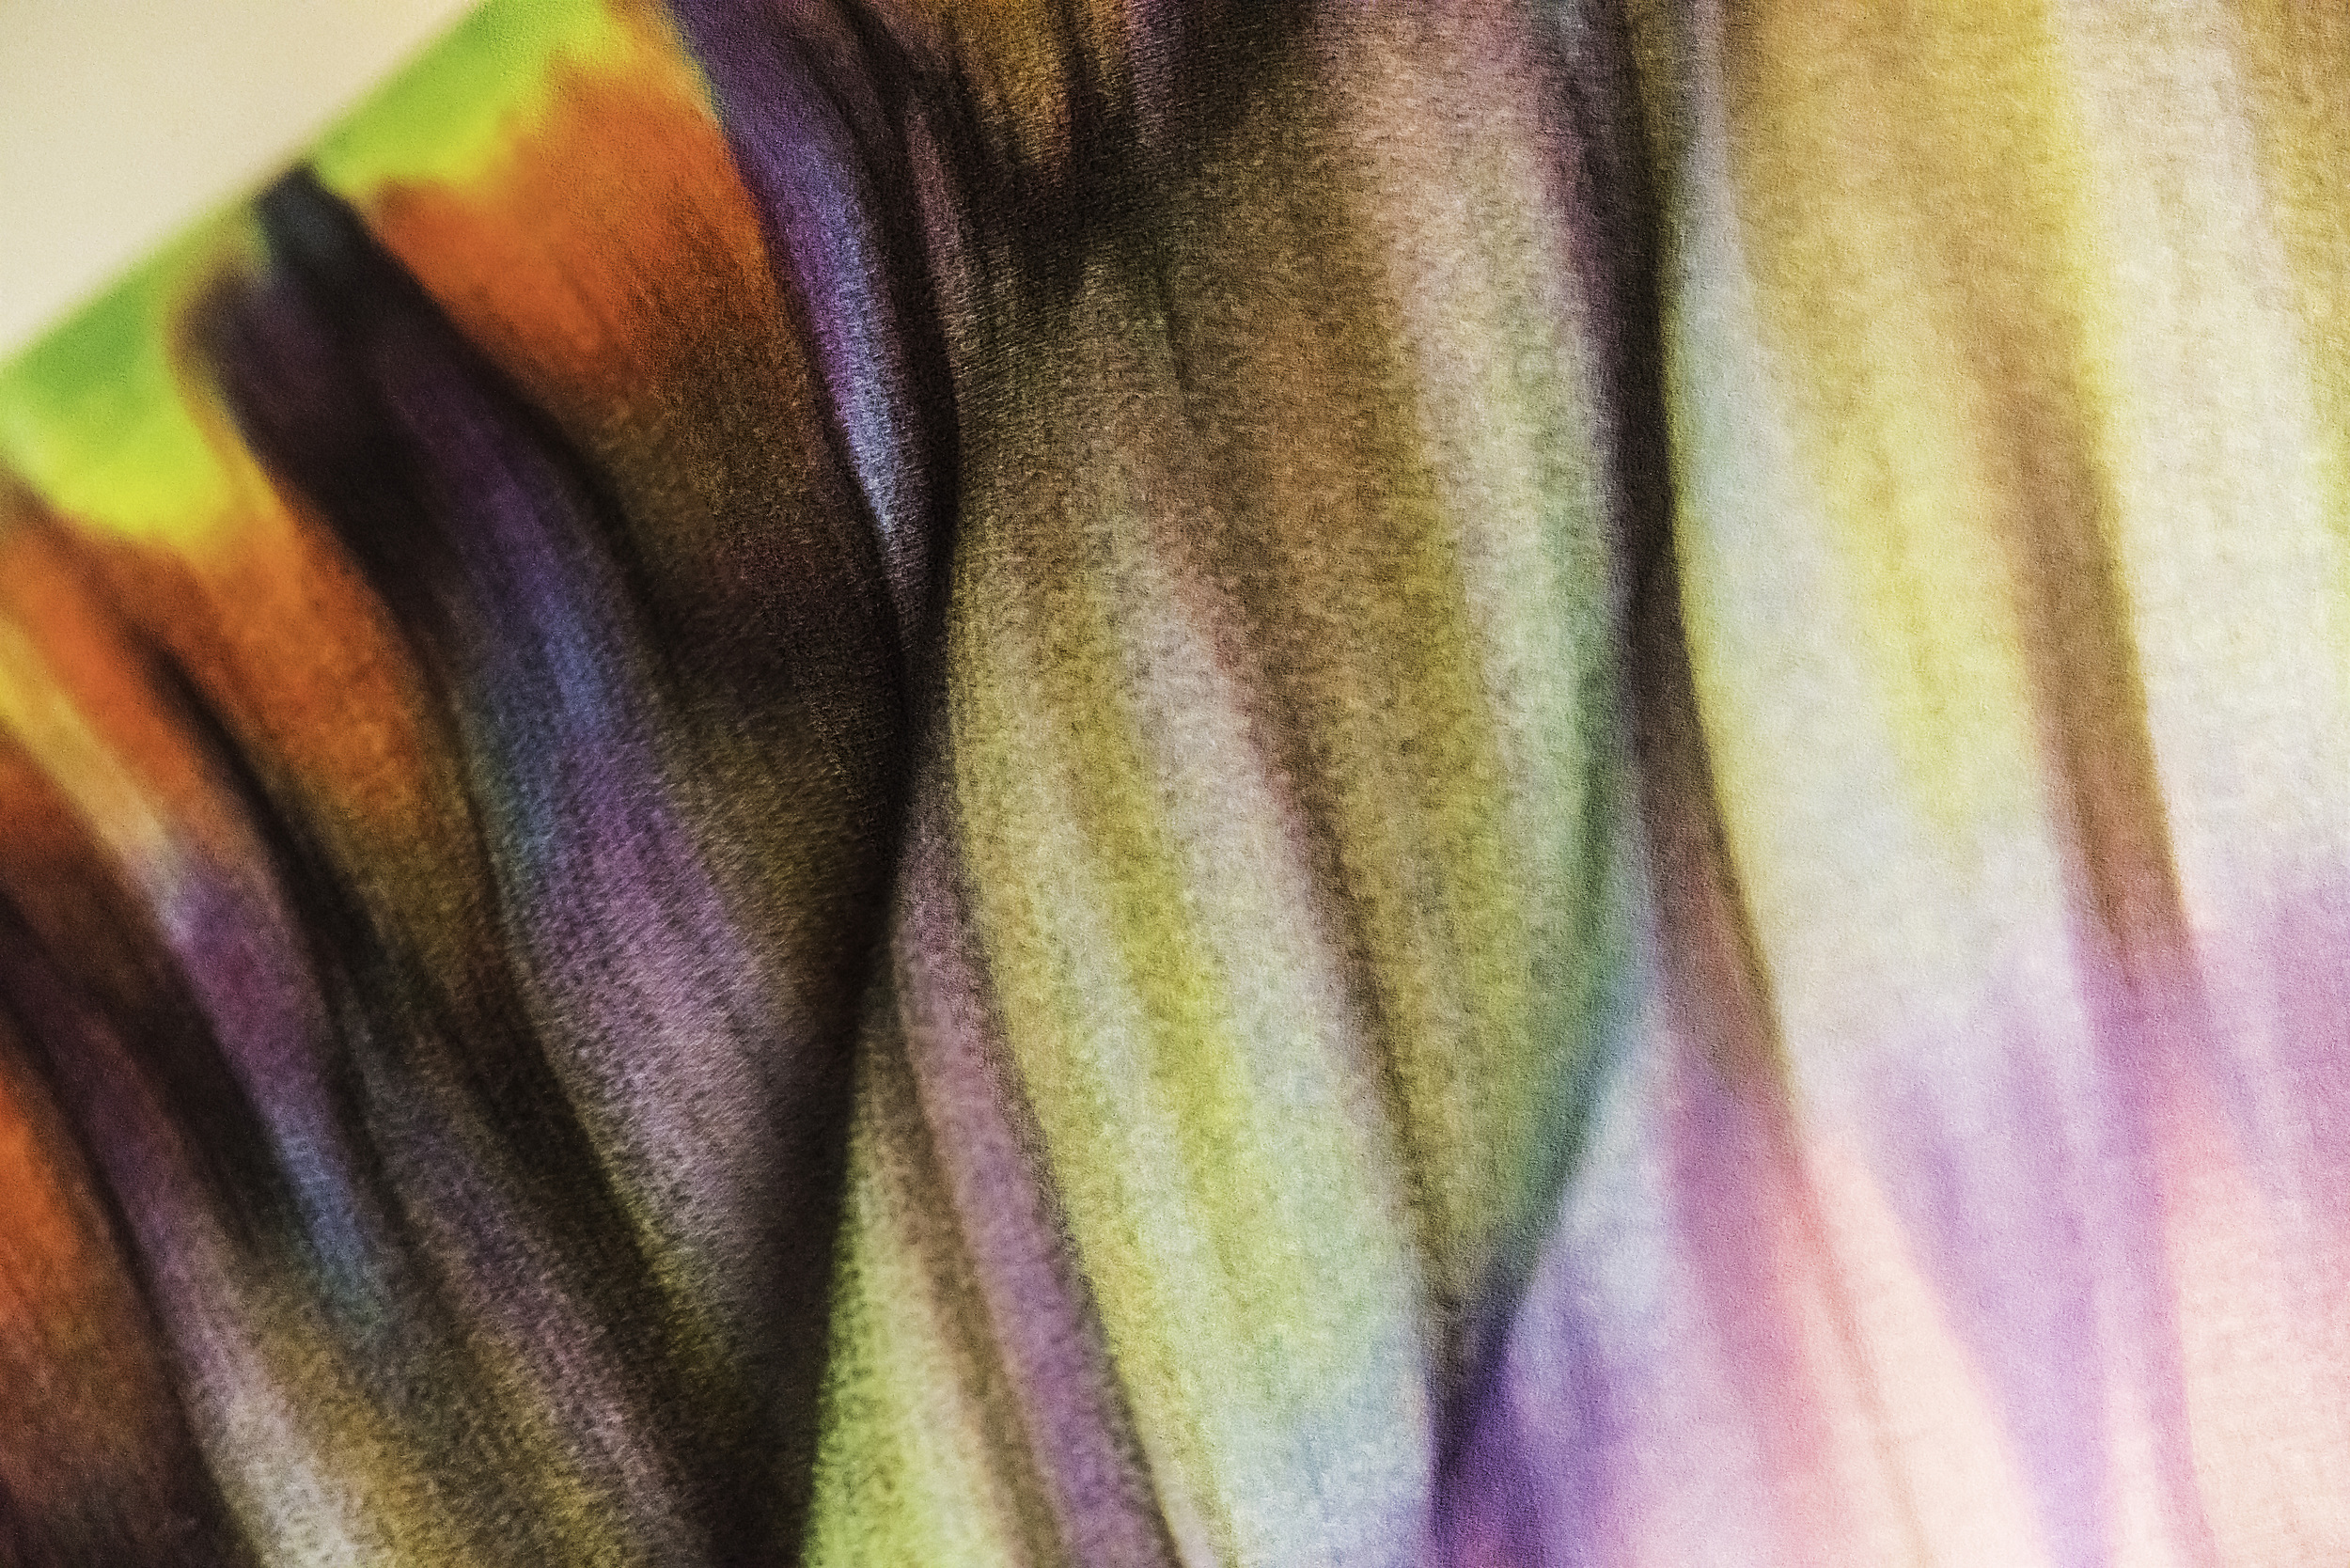 A small section of colorful fabric shot at 1200 mm focal length